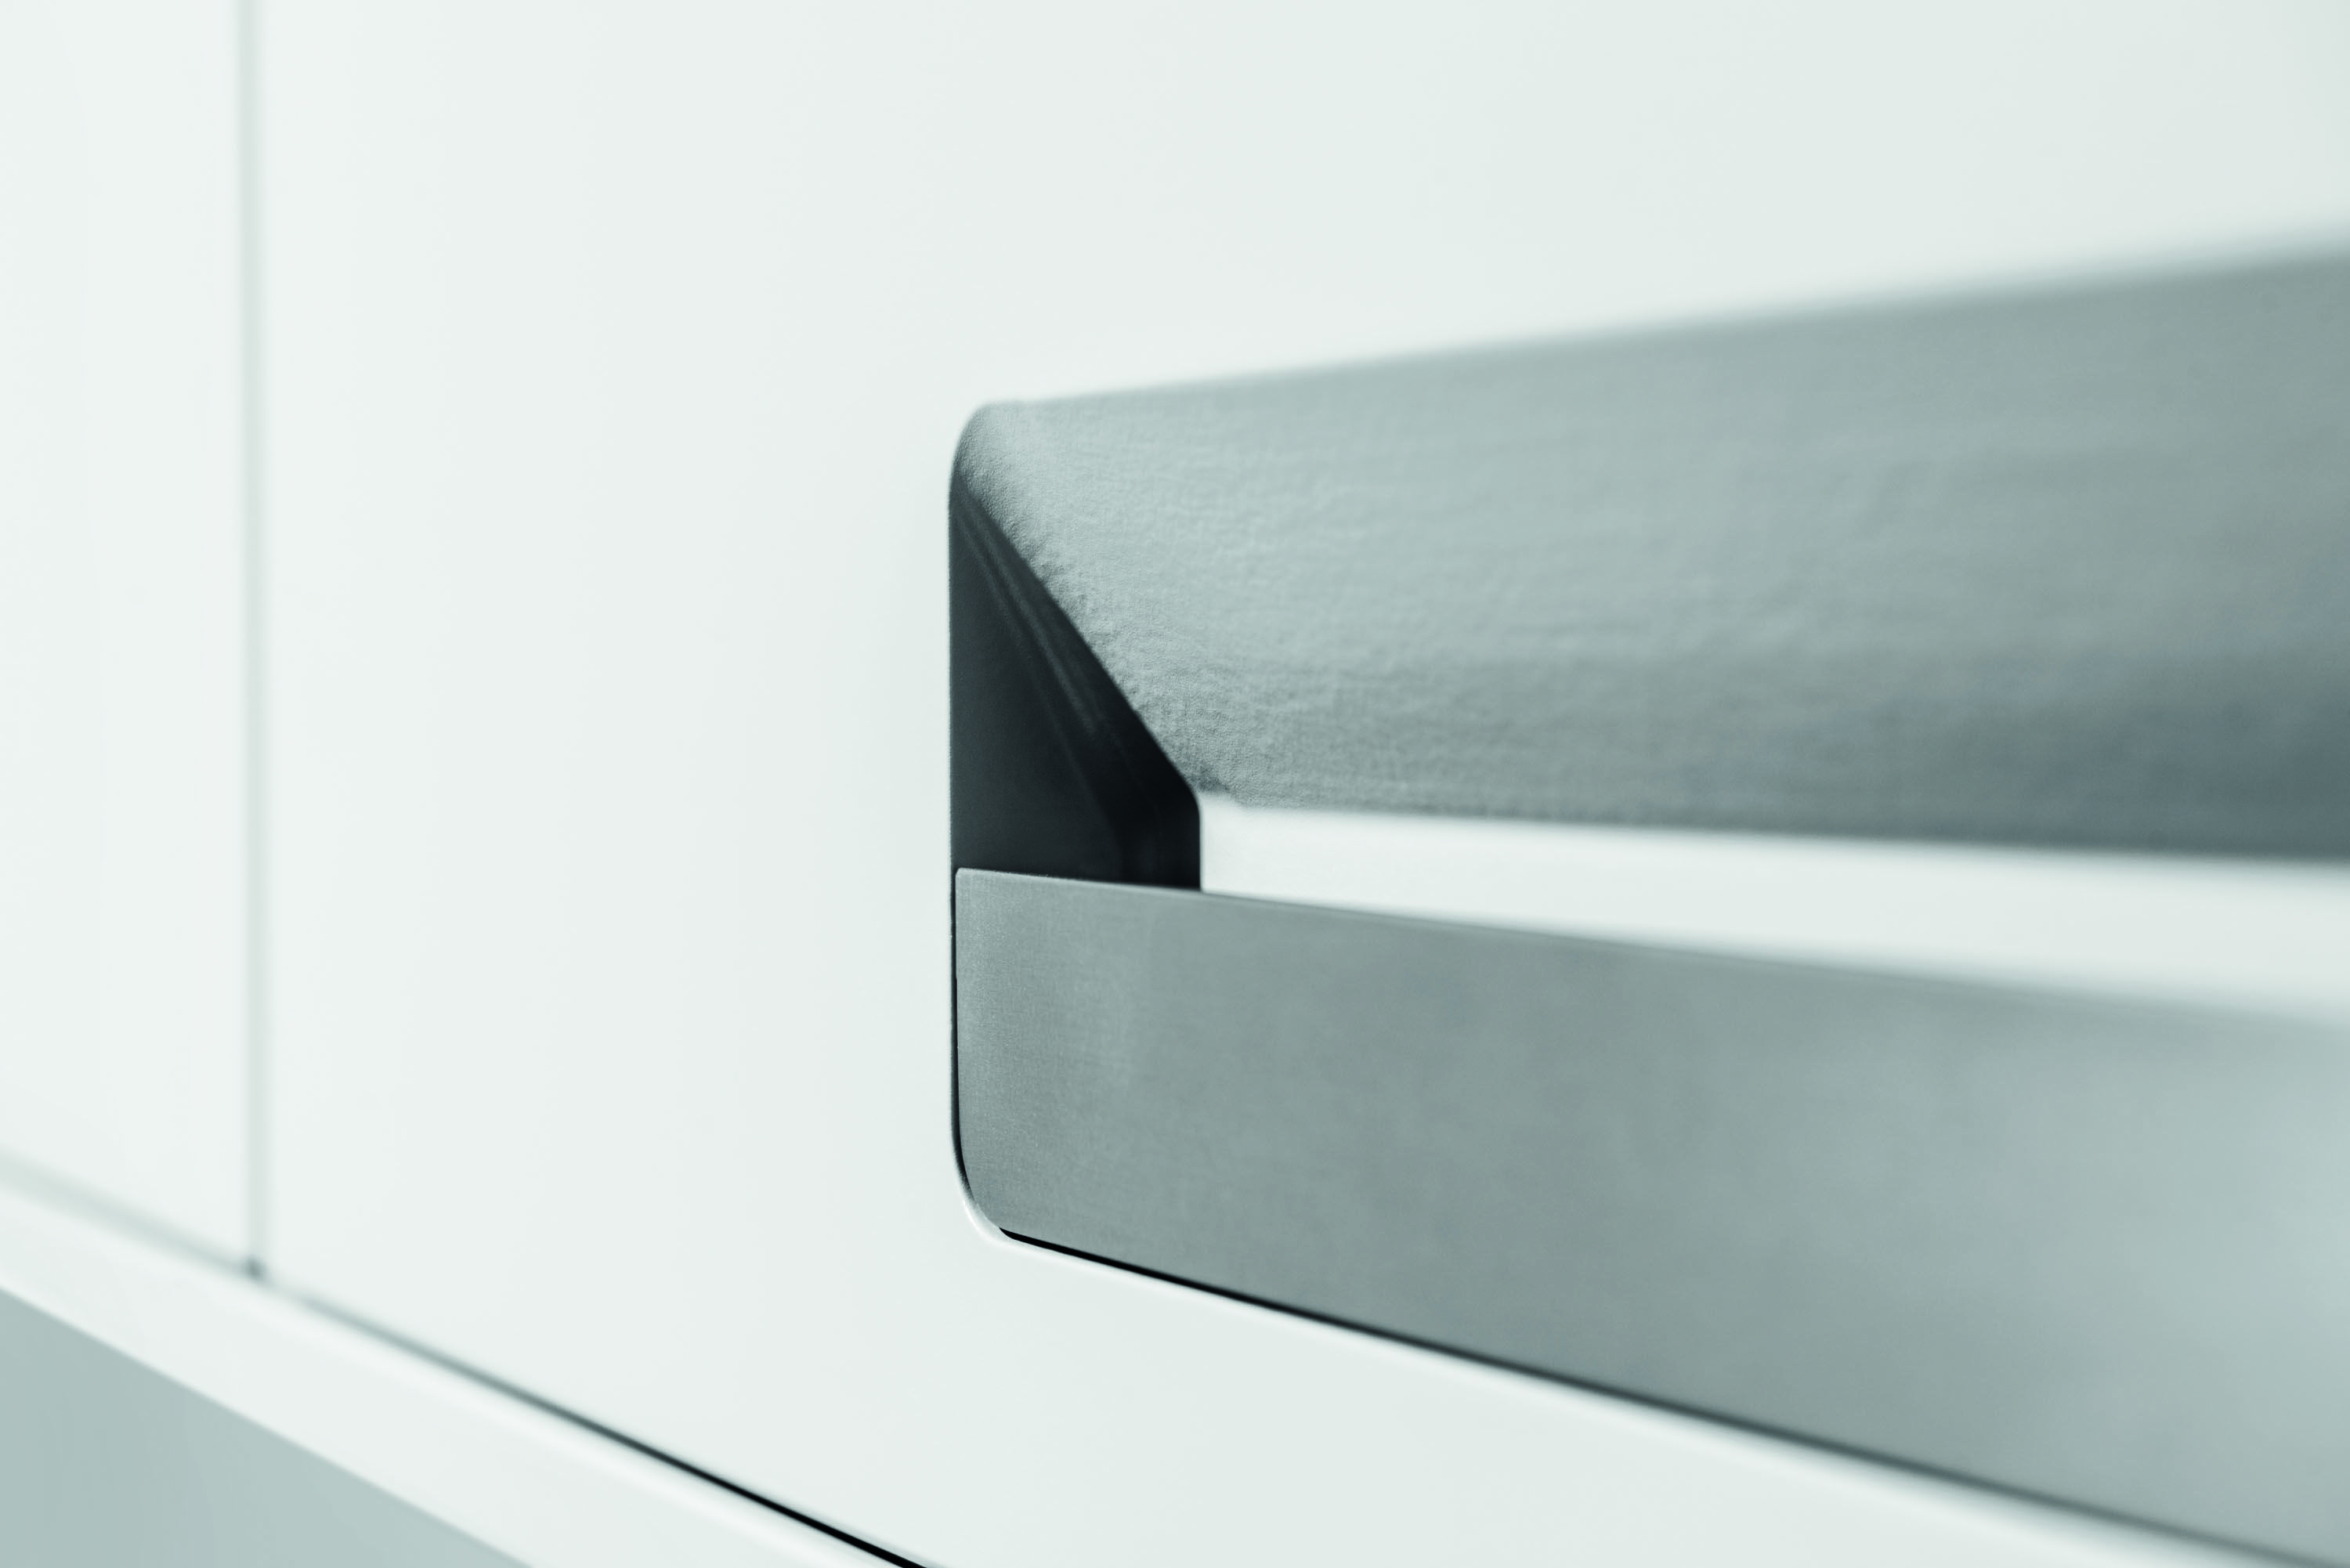 Kitchen handles | INHAUS kitchen handles | Pinterest | Kitchen handles